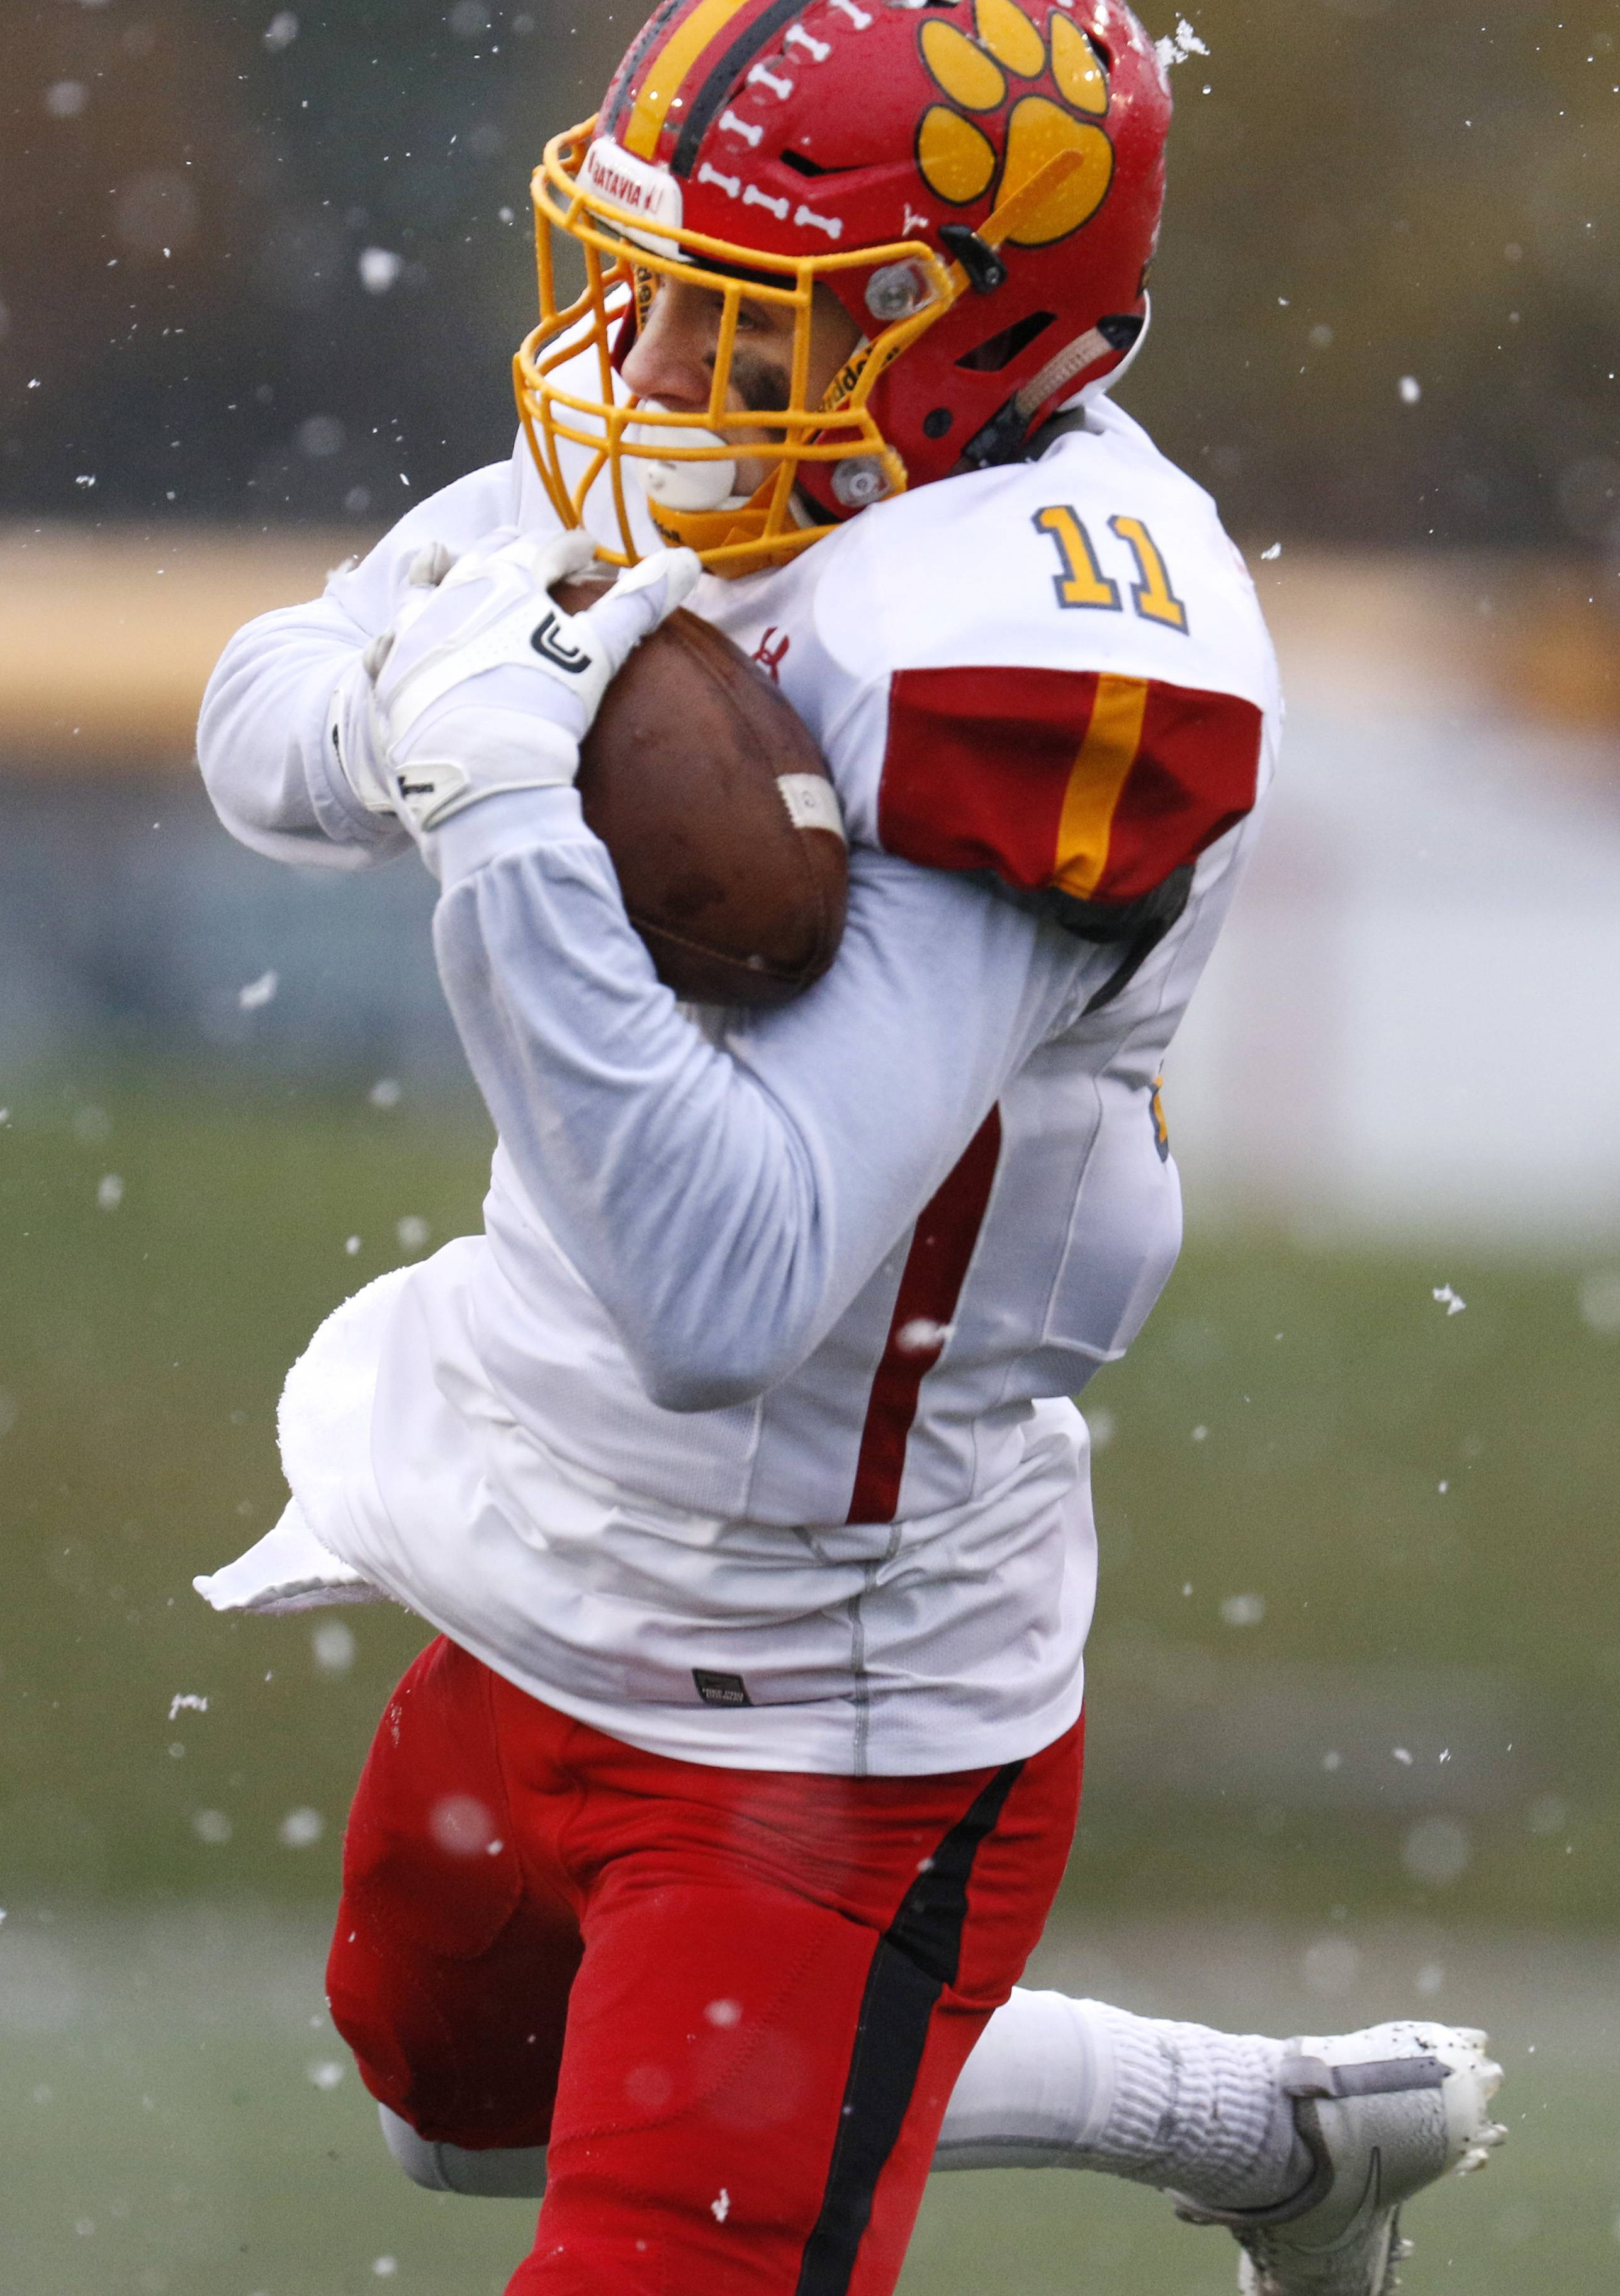 Batavia's Eric Peterson (11) catches a pass against Benet Academy in the Class 7A semifinals game in Lisle.